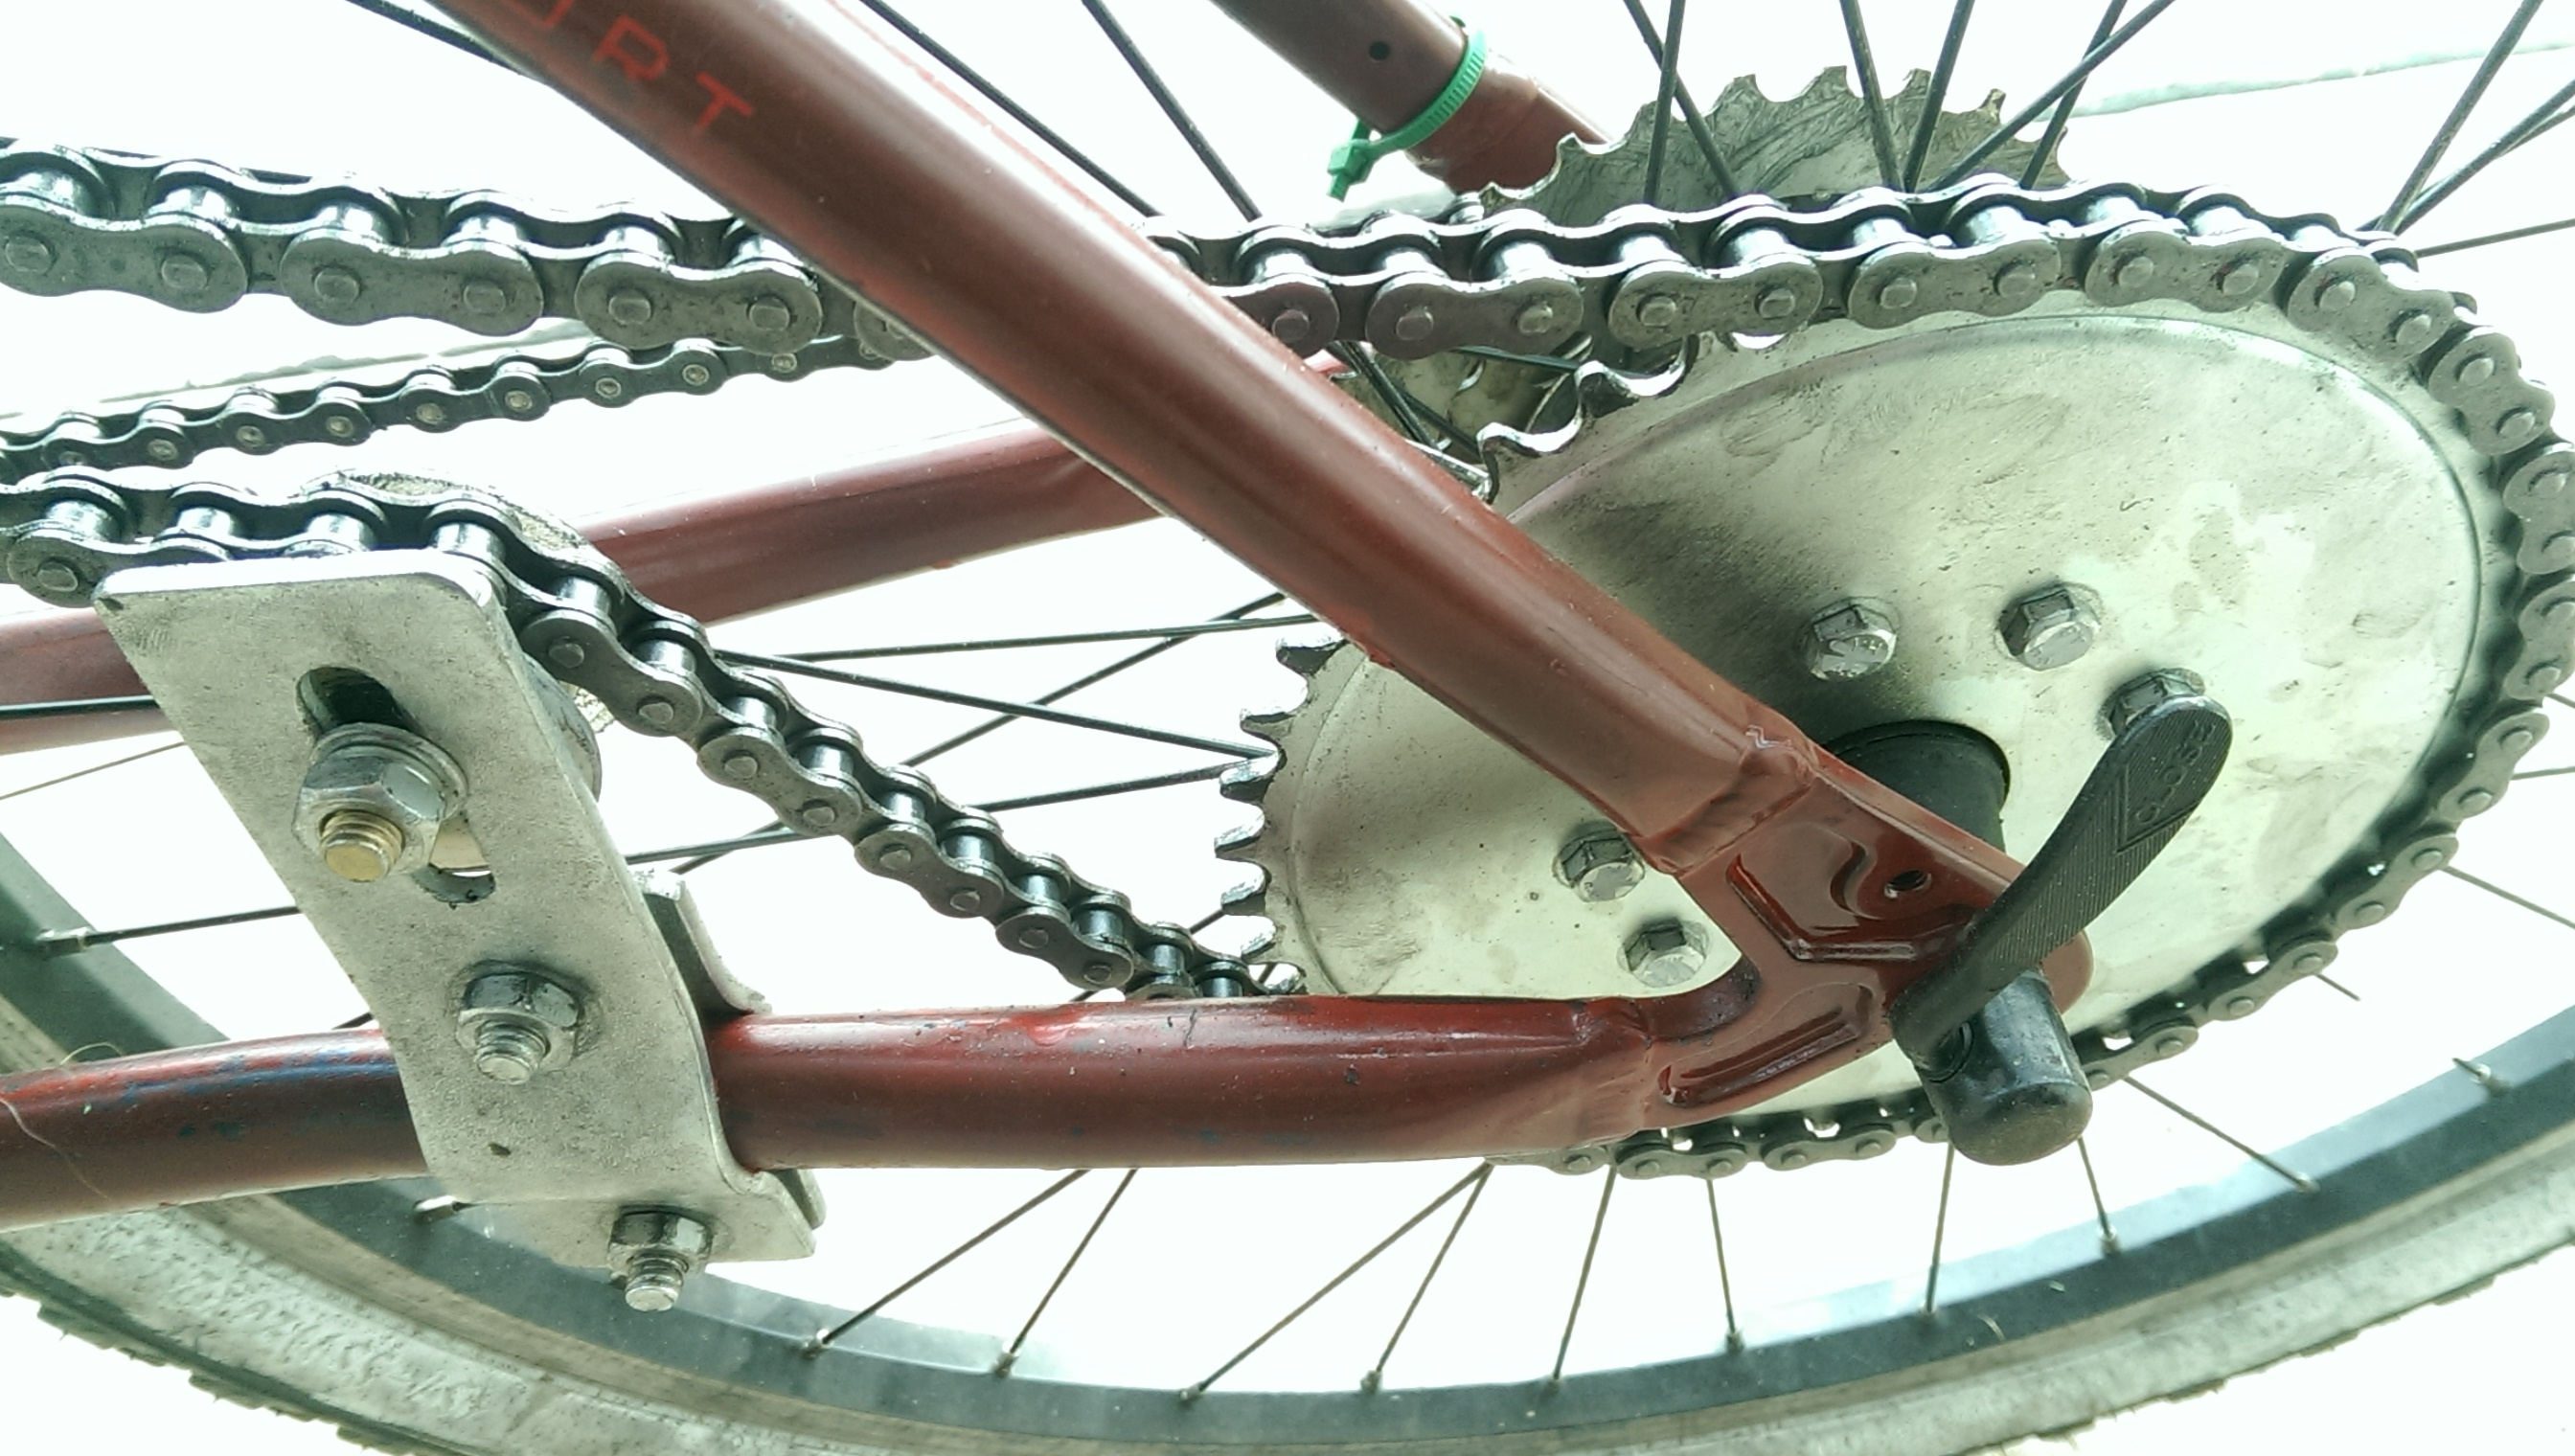 Sprocket Mounting Motorized Bike Tention Pulley Chain